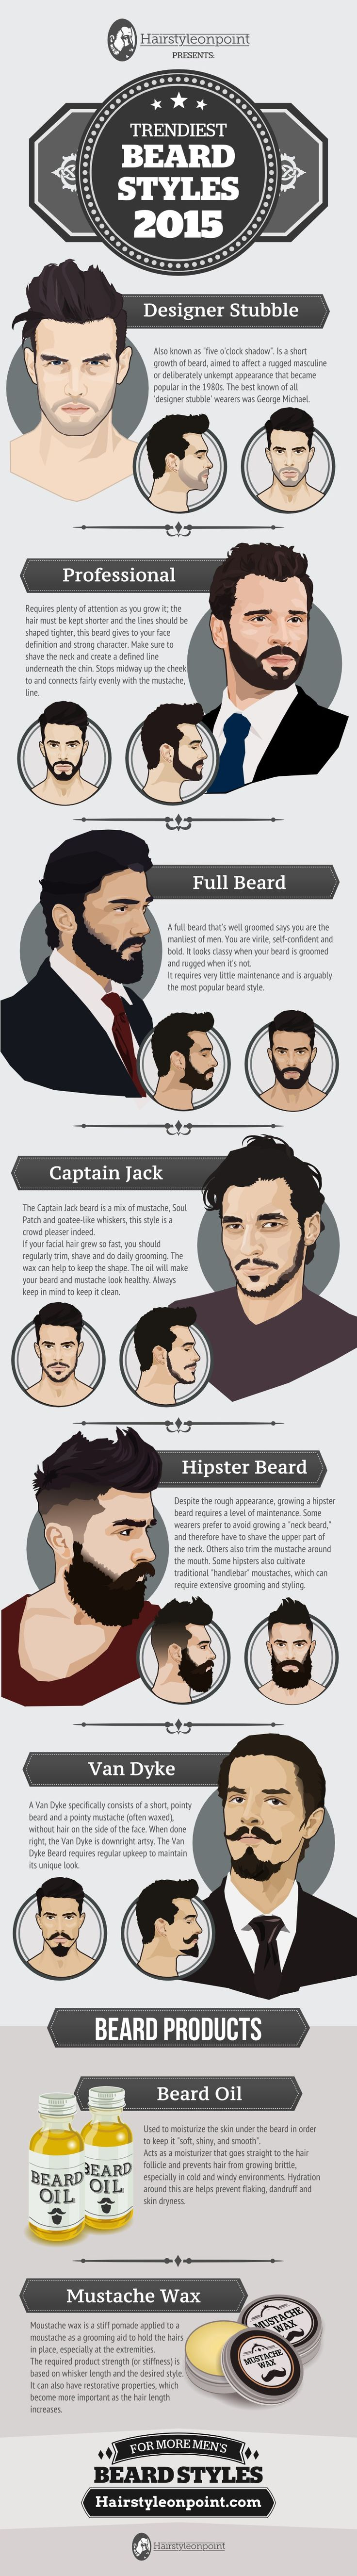 Infographic: The Most Popular Men's Beard Style Trends Today - DesignTAXI.com